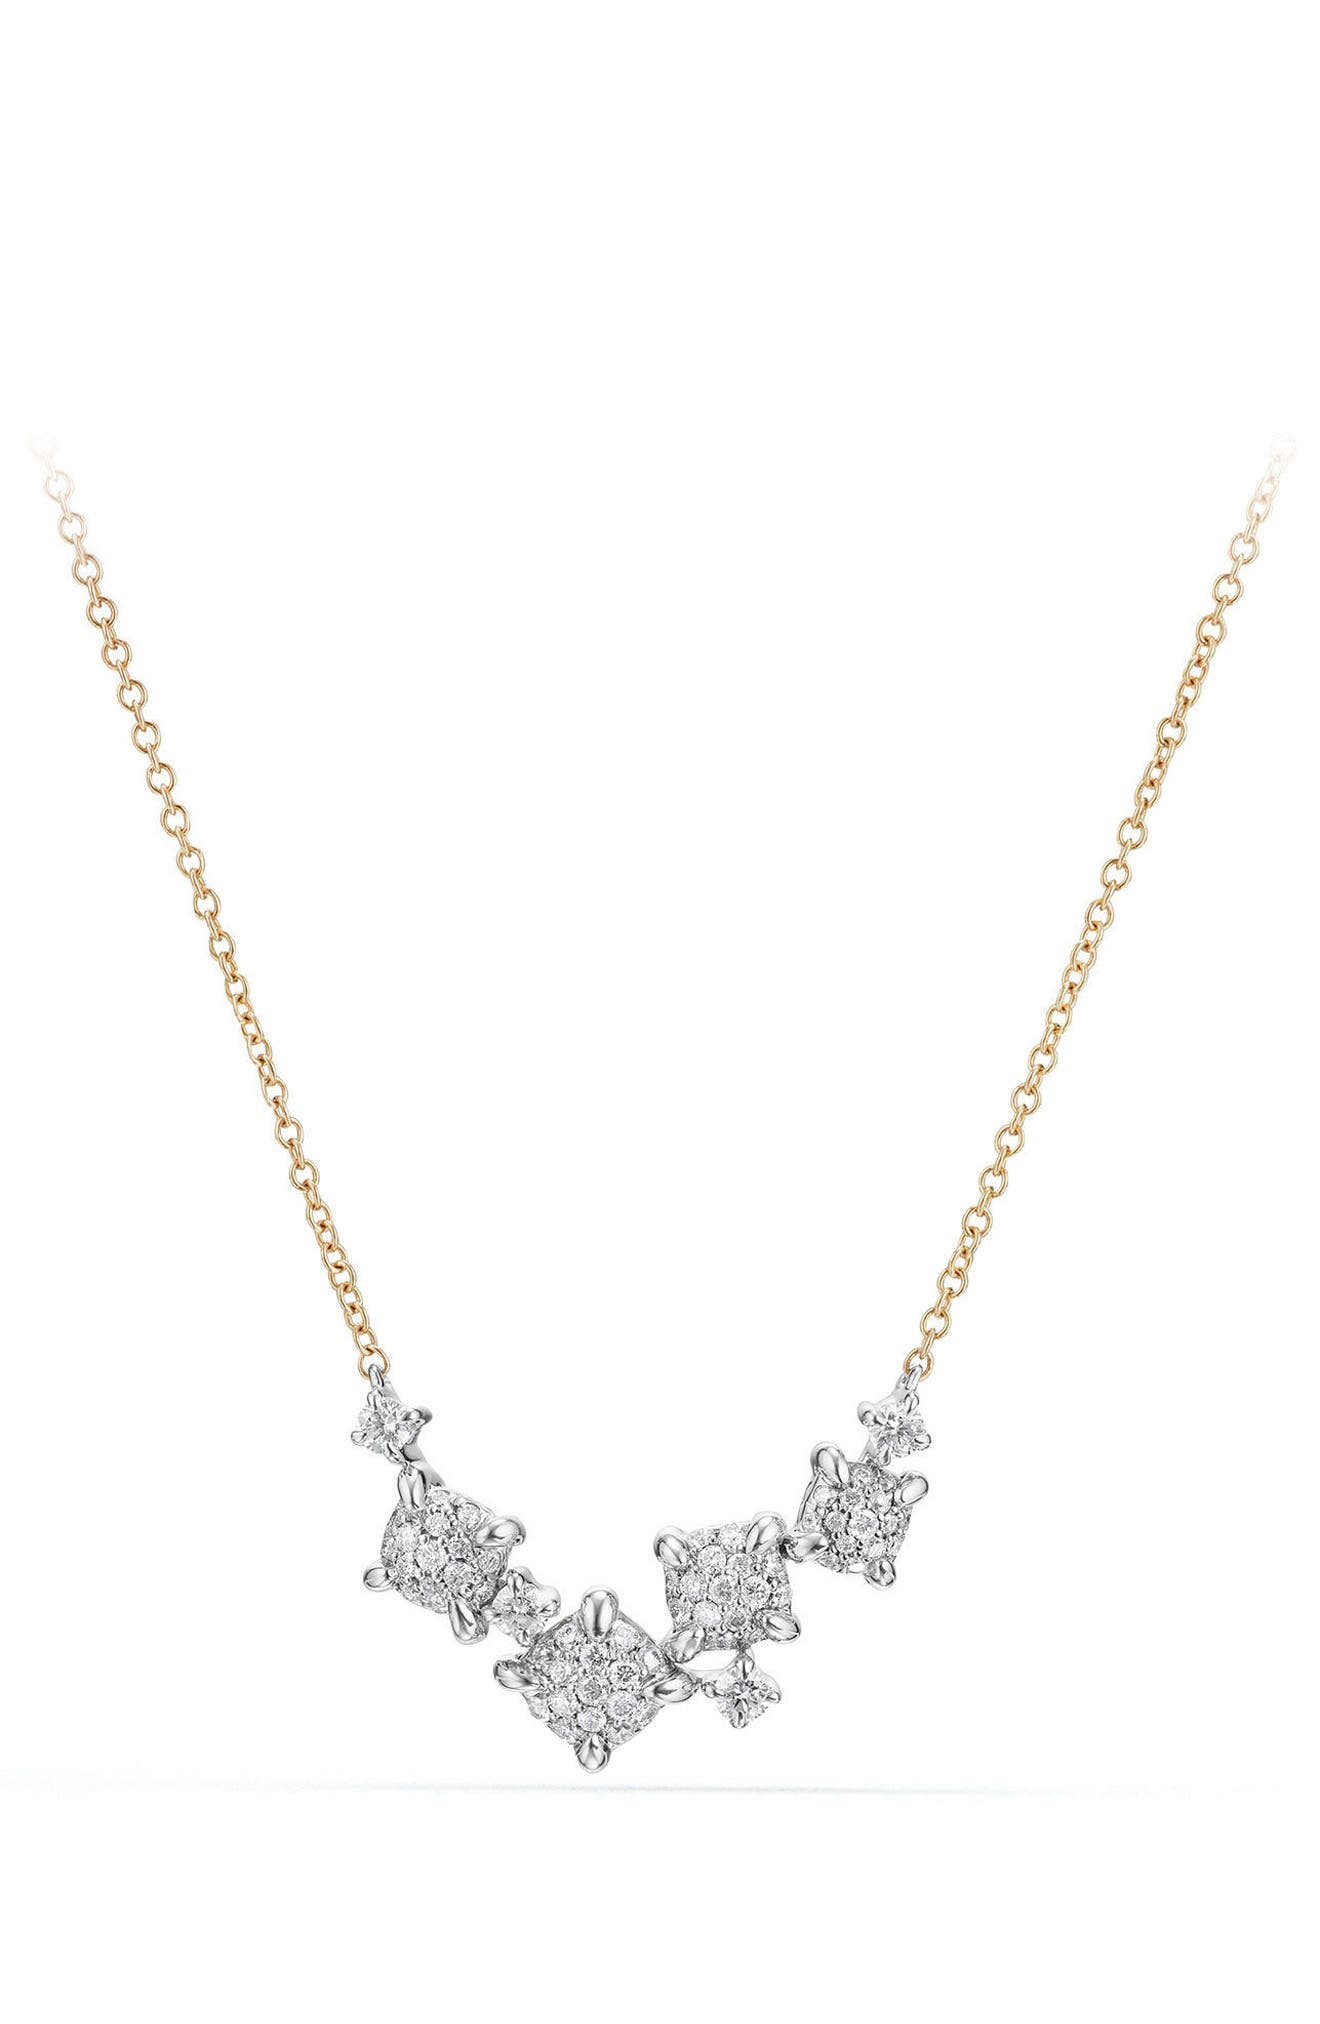 Main Image - David Yurman Precious Châtelaine Necklace with Diamonds in 18K Gold